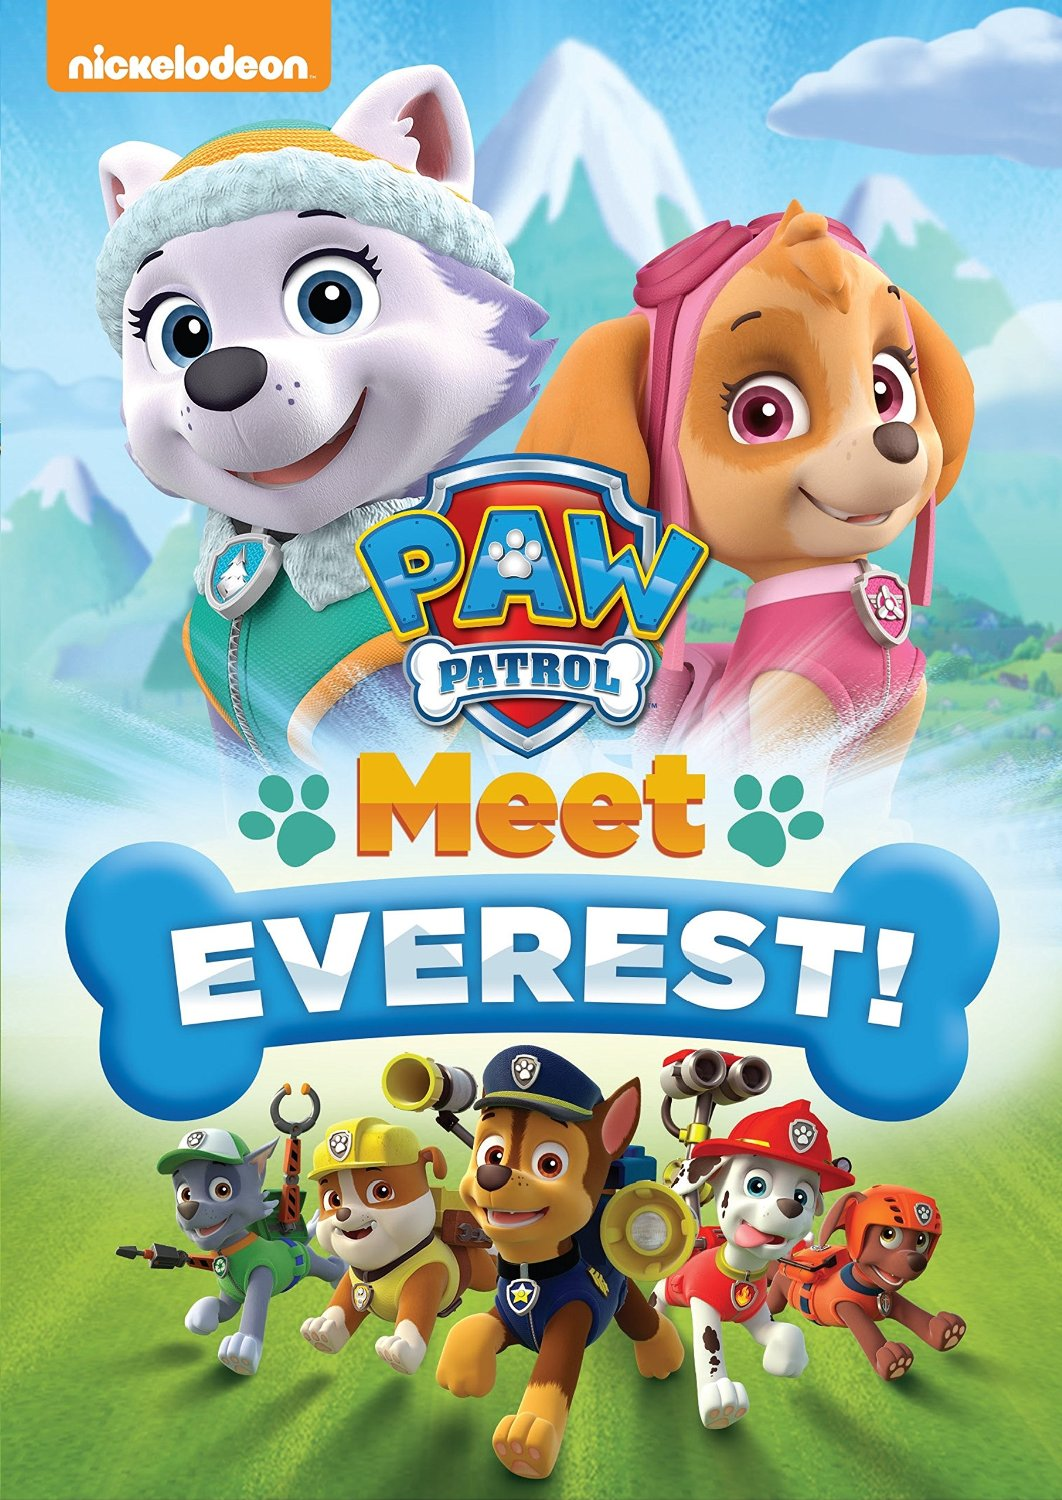 paw patrol meet everest movie